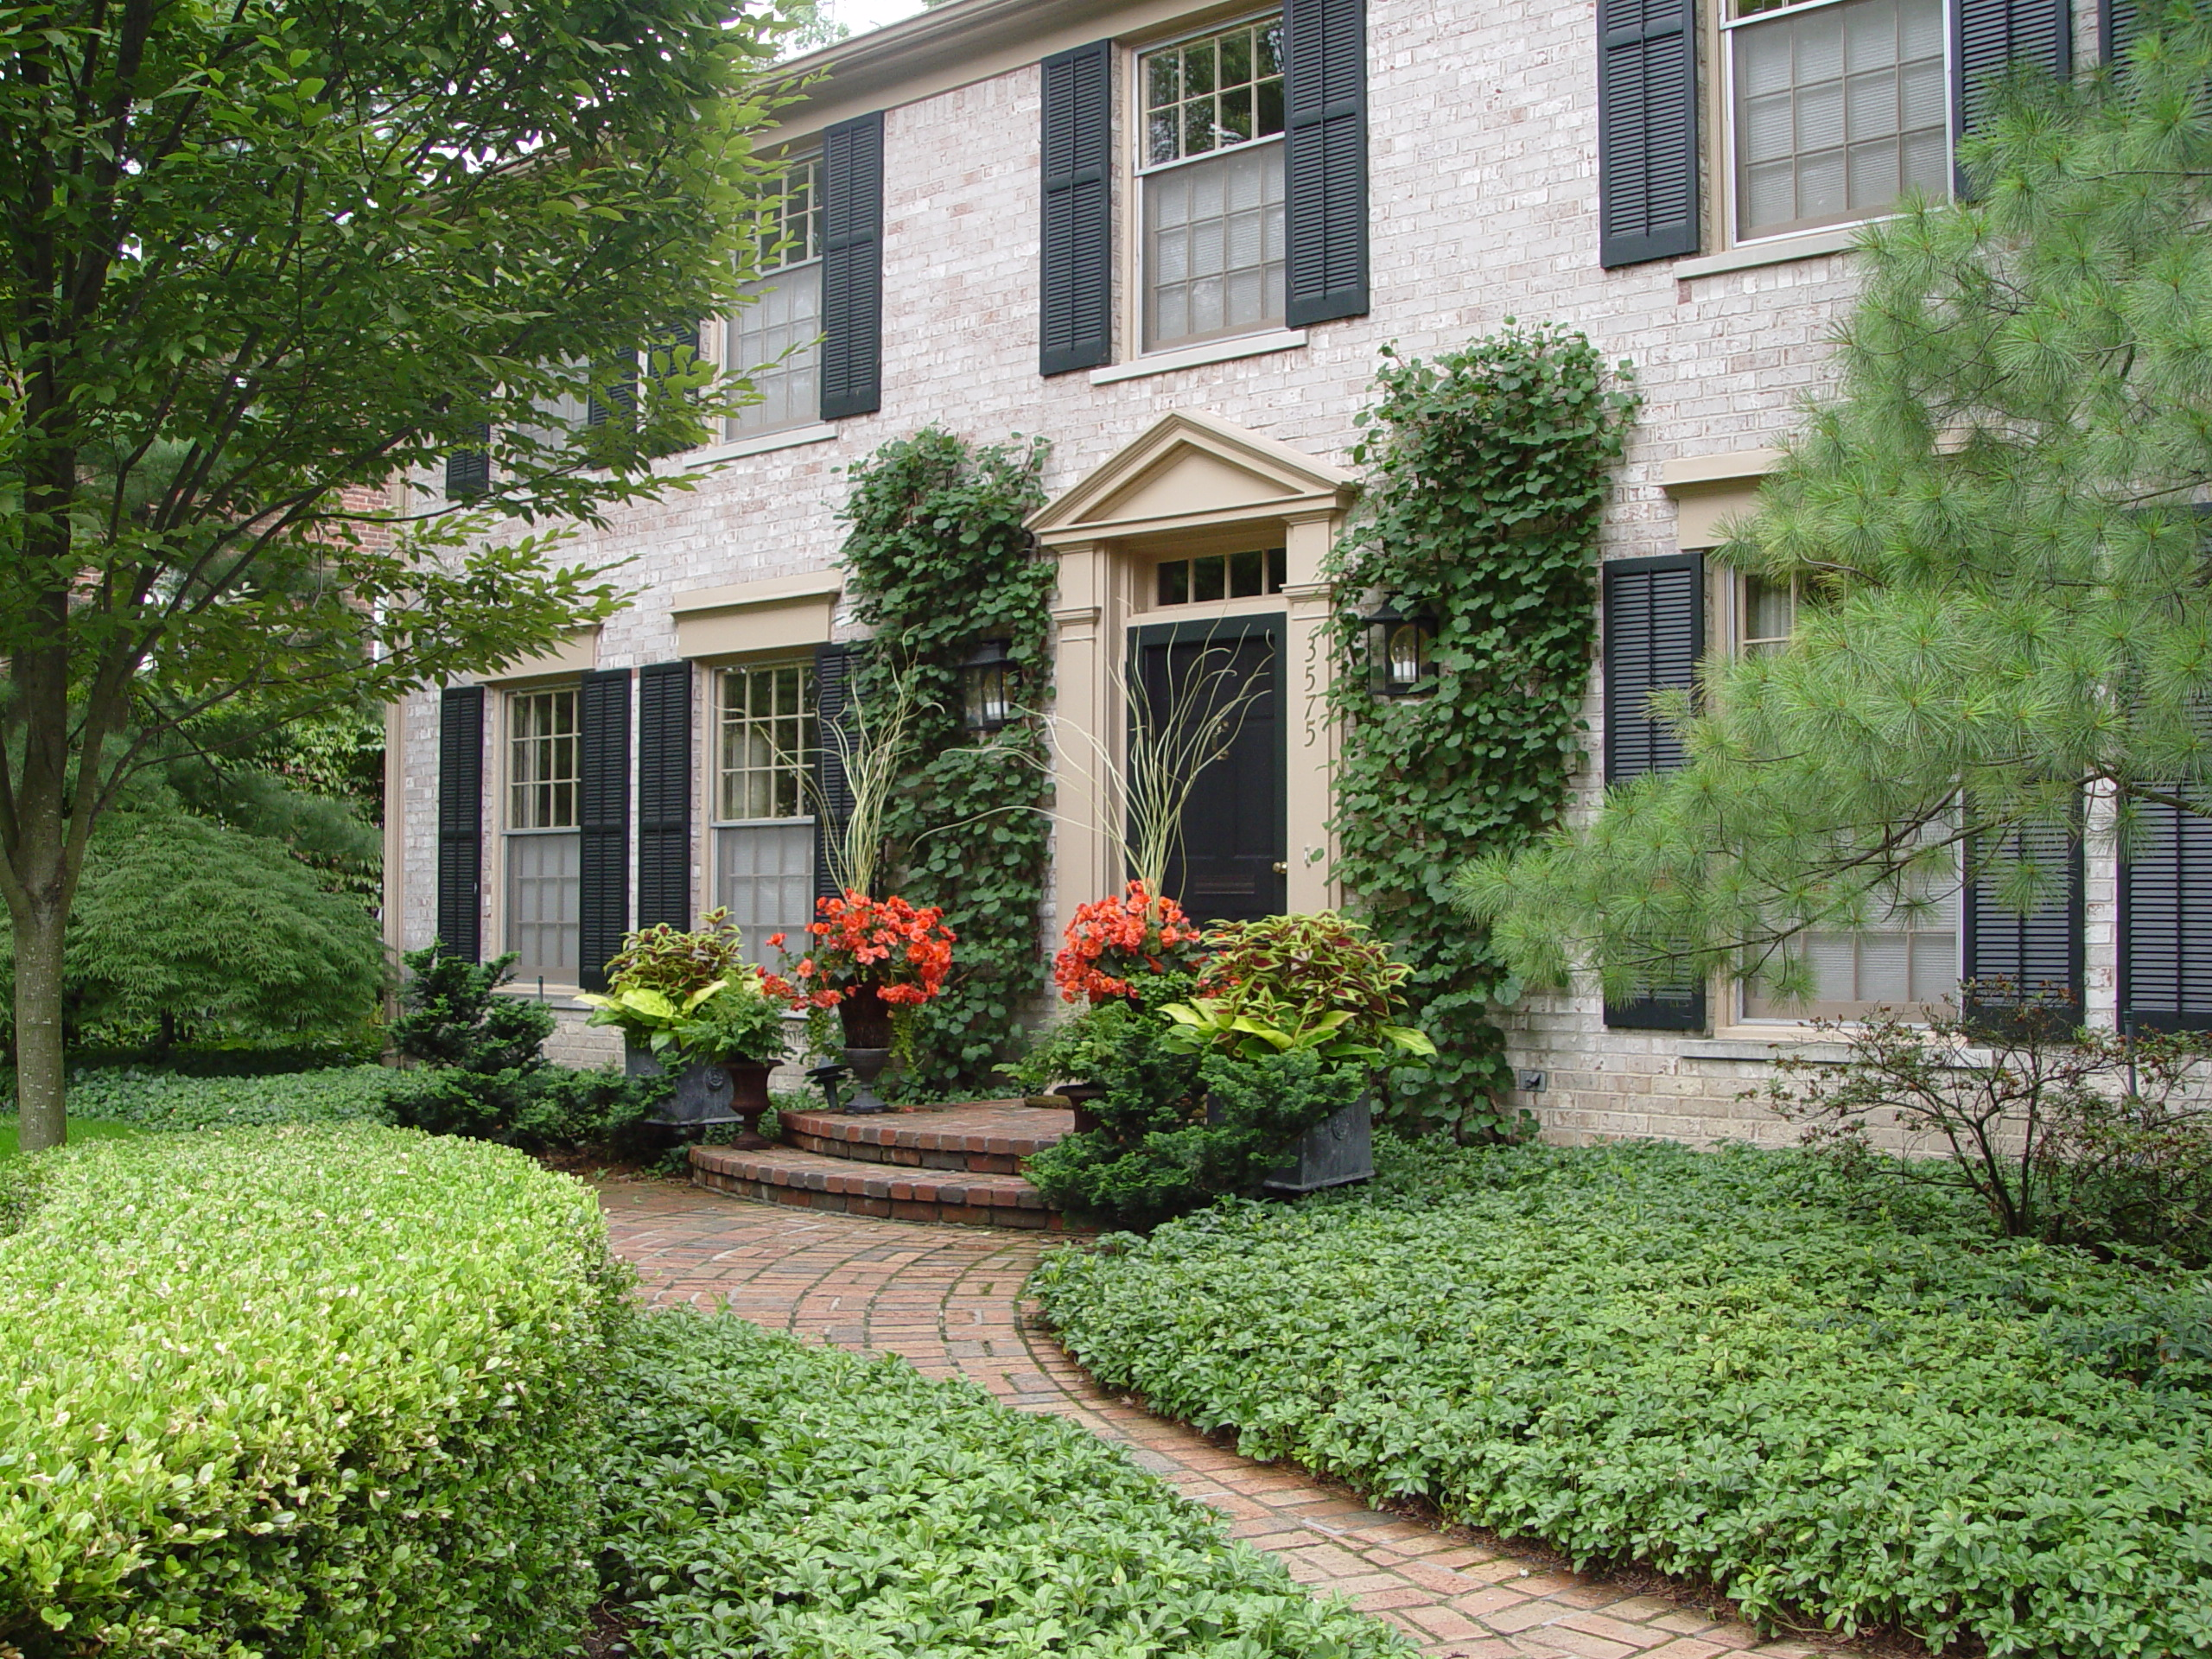 This house has beautiful curb appeal.